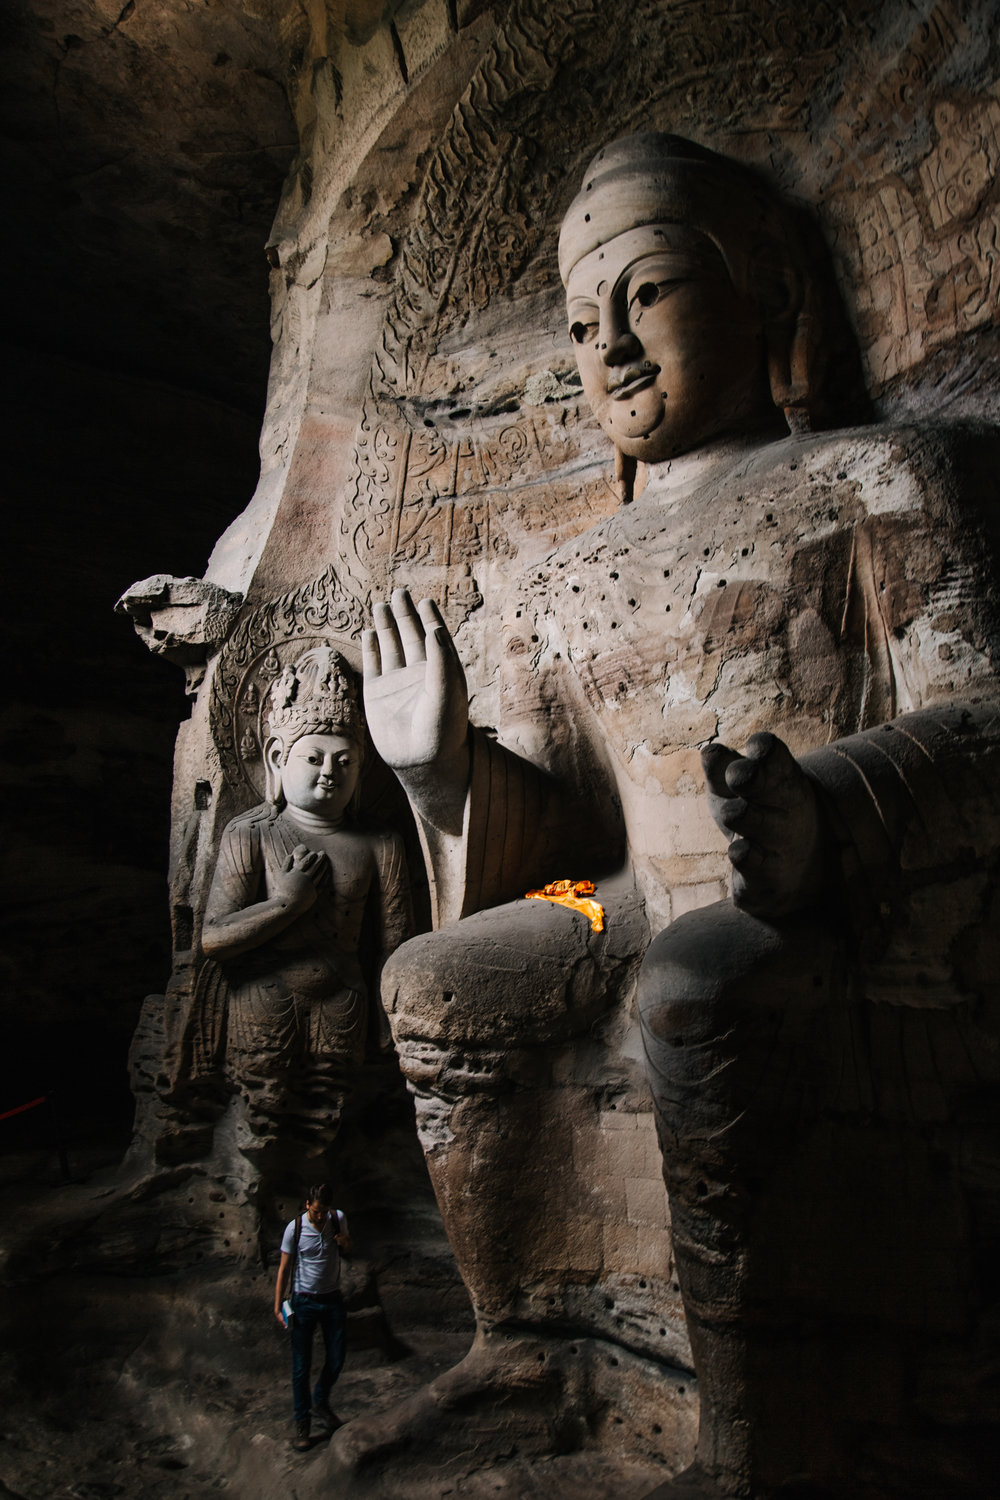 Cave 3 - One of the larger statues at Yungang